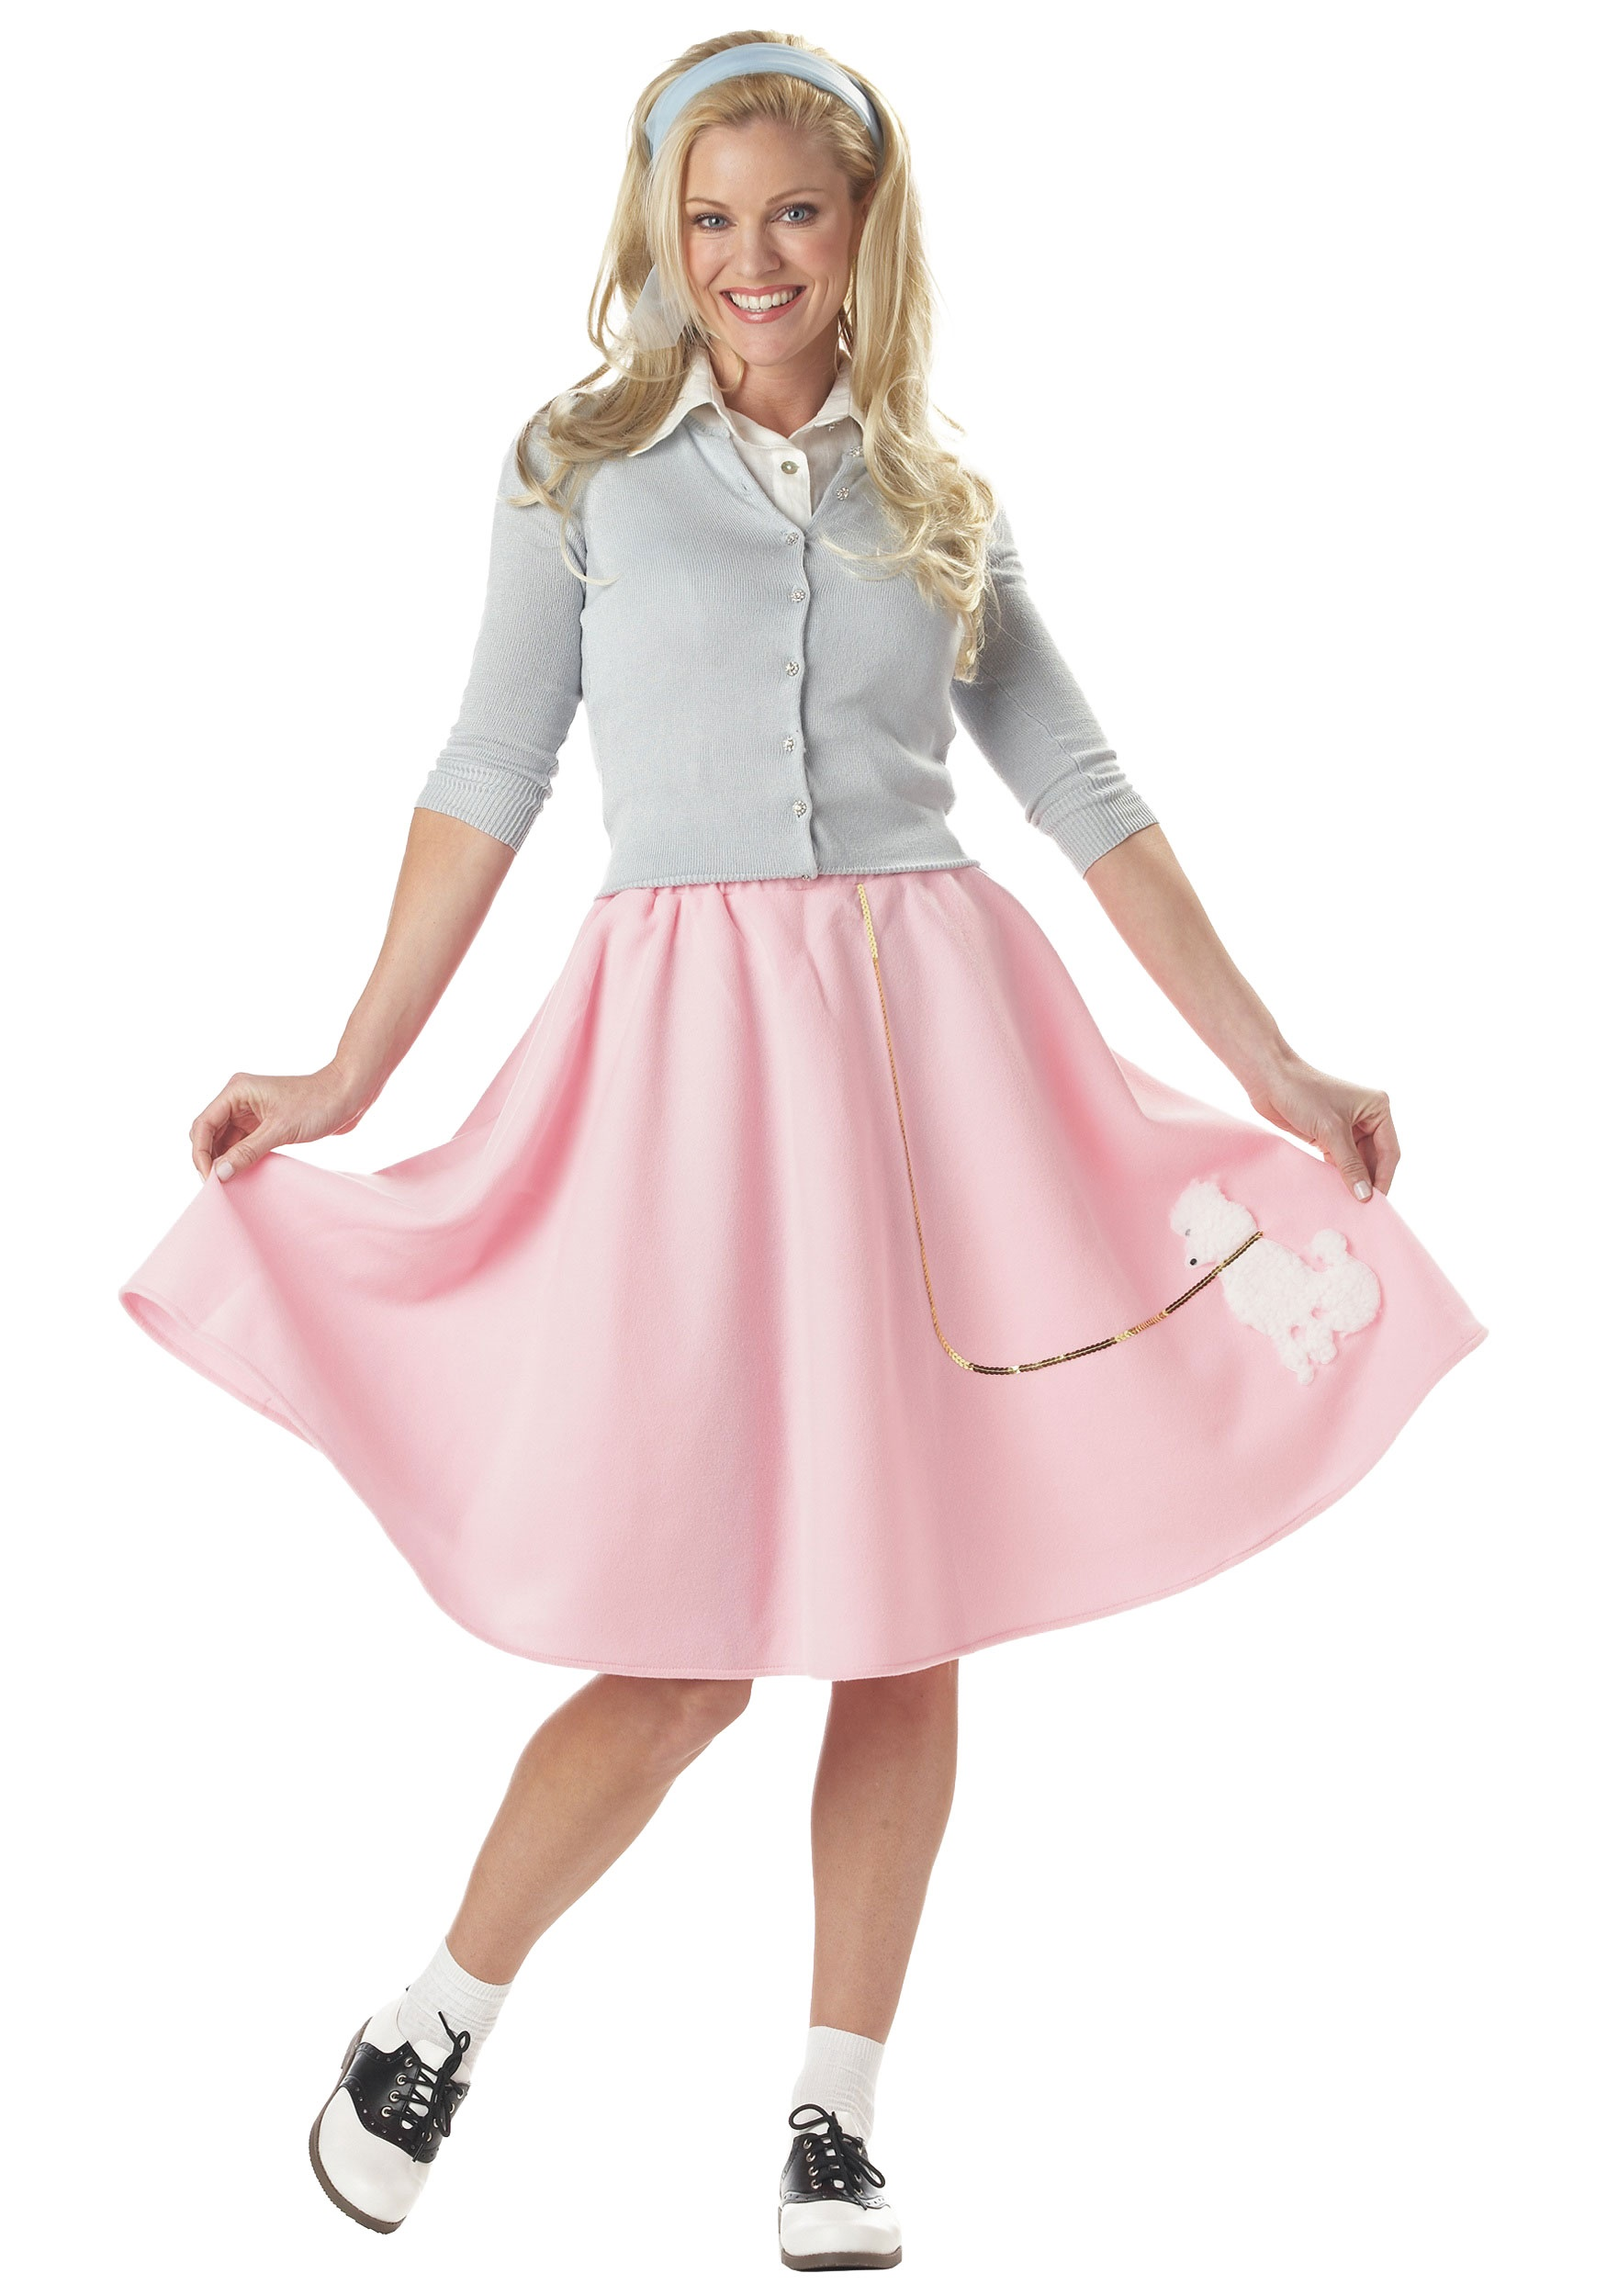 Women's Poodle Skirt Pink Costume